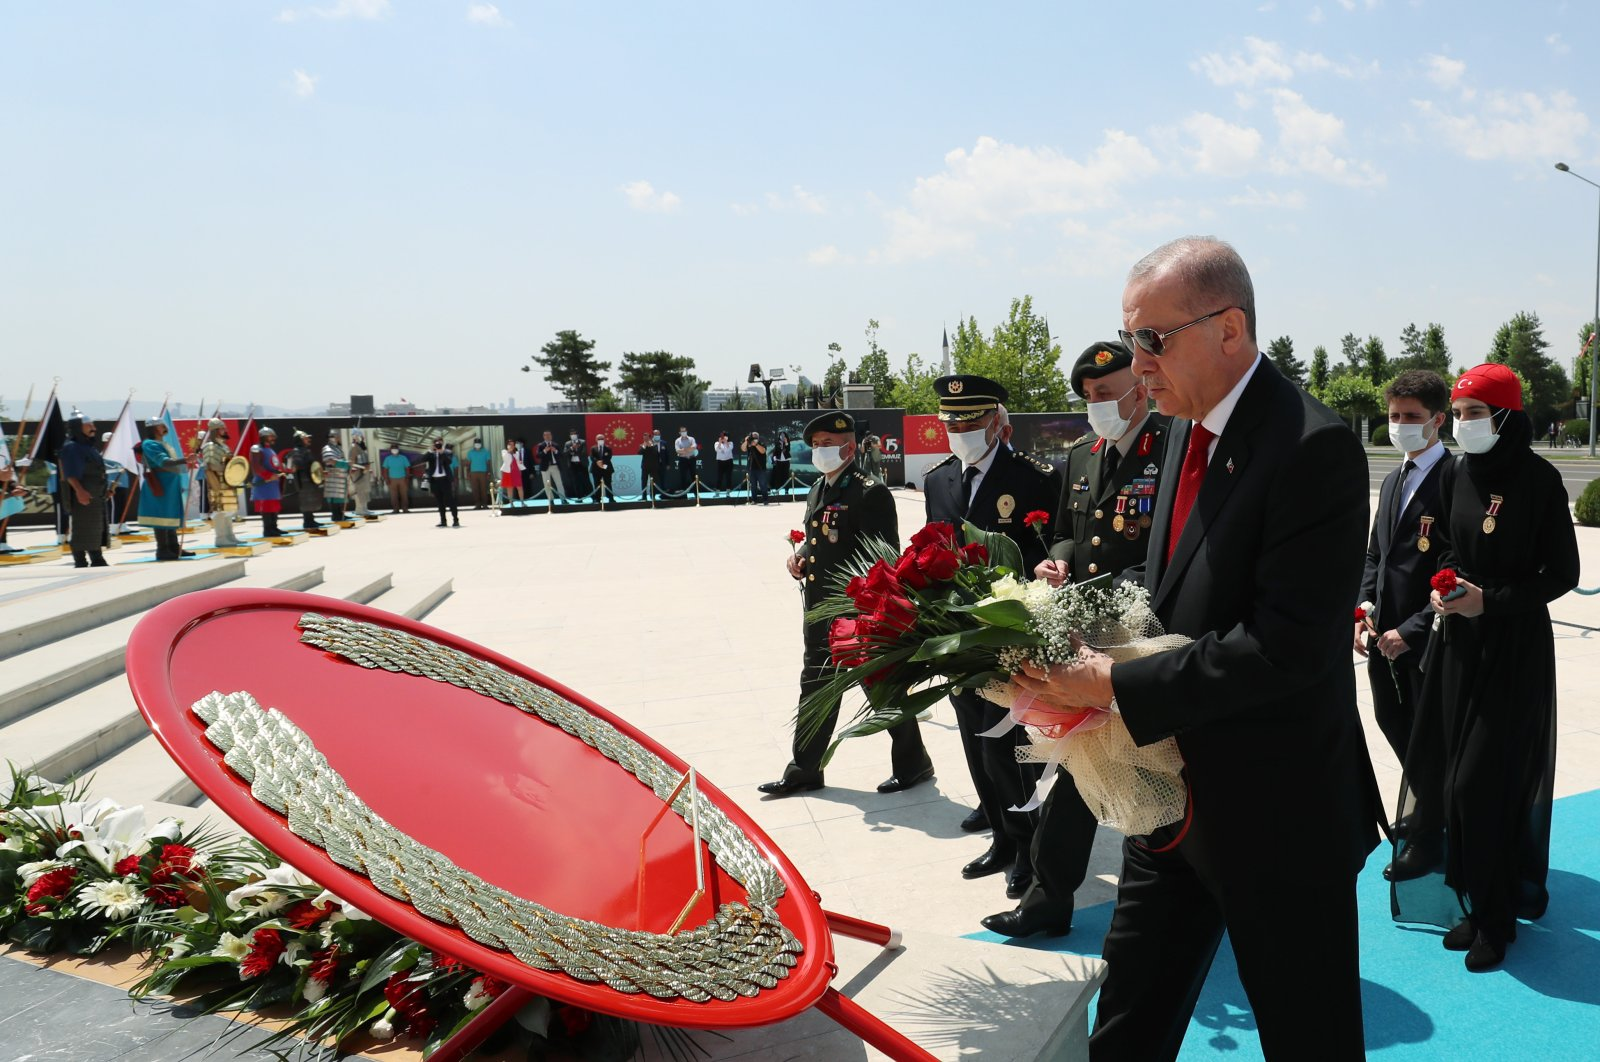 President Recep Tayyip Erdoğan places a wreath on the July 15 Martyrs' Monument during a commemoration ceremony at the Beştepe Presidential Complex in the capital Ankara, Turkey, July 15, 2020. (AA Photo)